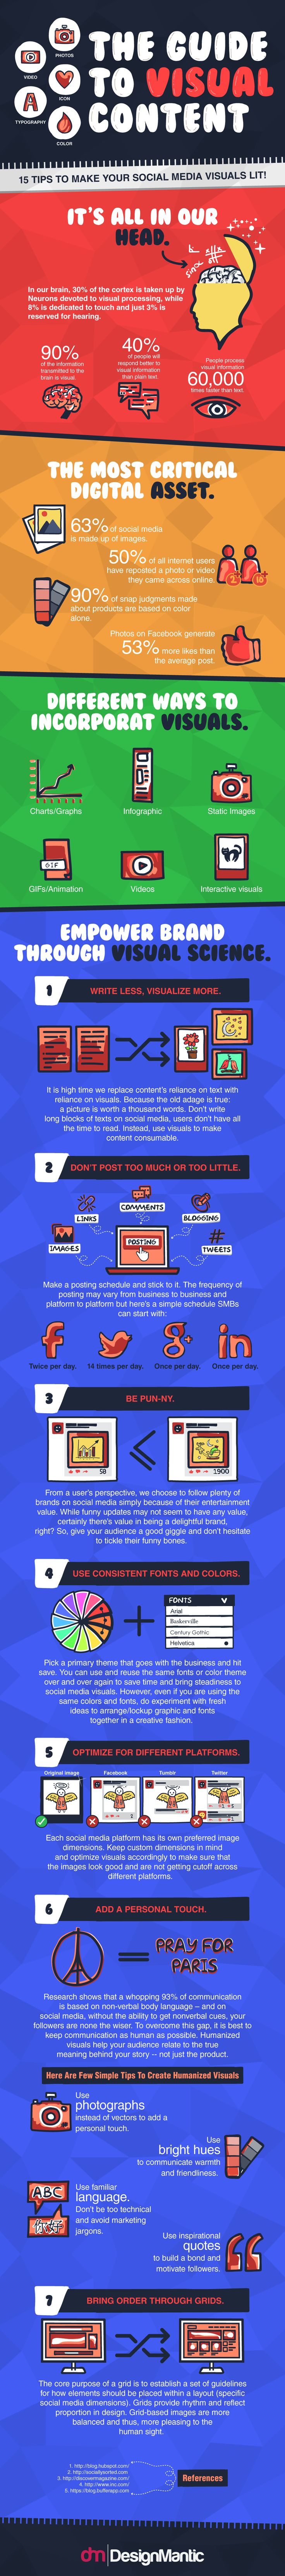 Infographic: A Guide To Visual Content On Social Media